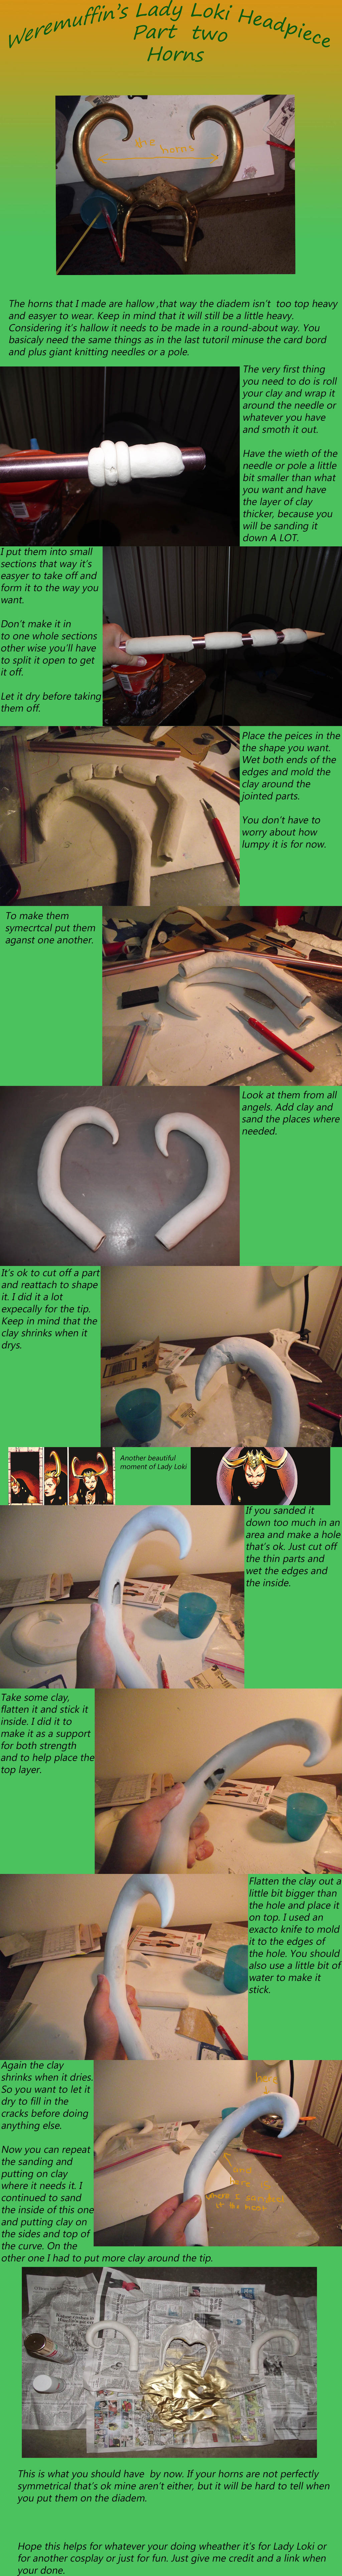 Lady Loki tutorial headpiece part two: The Horns by wearmuffin